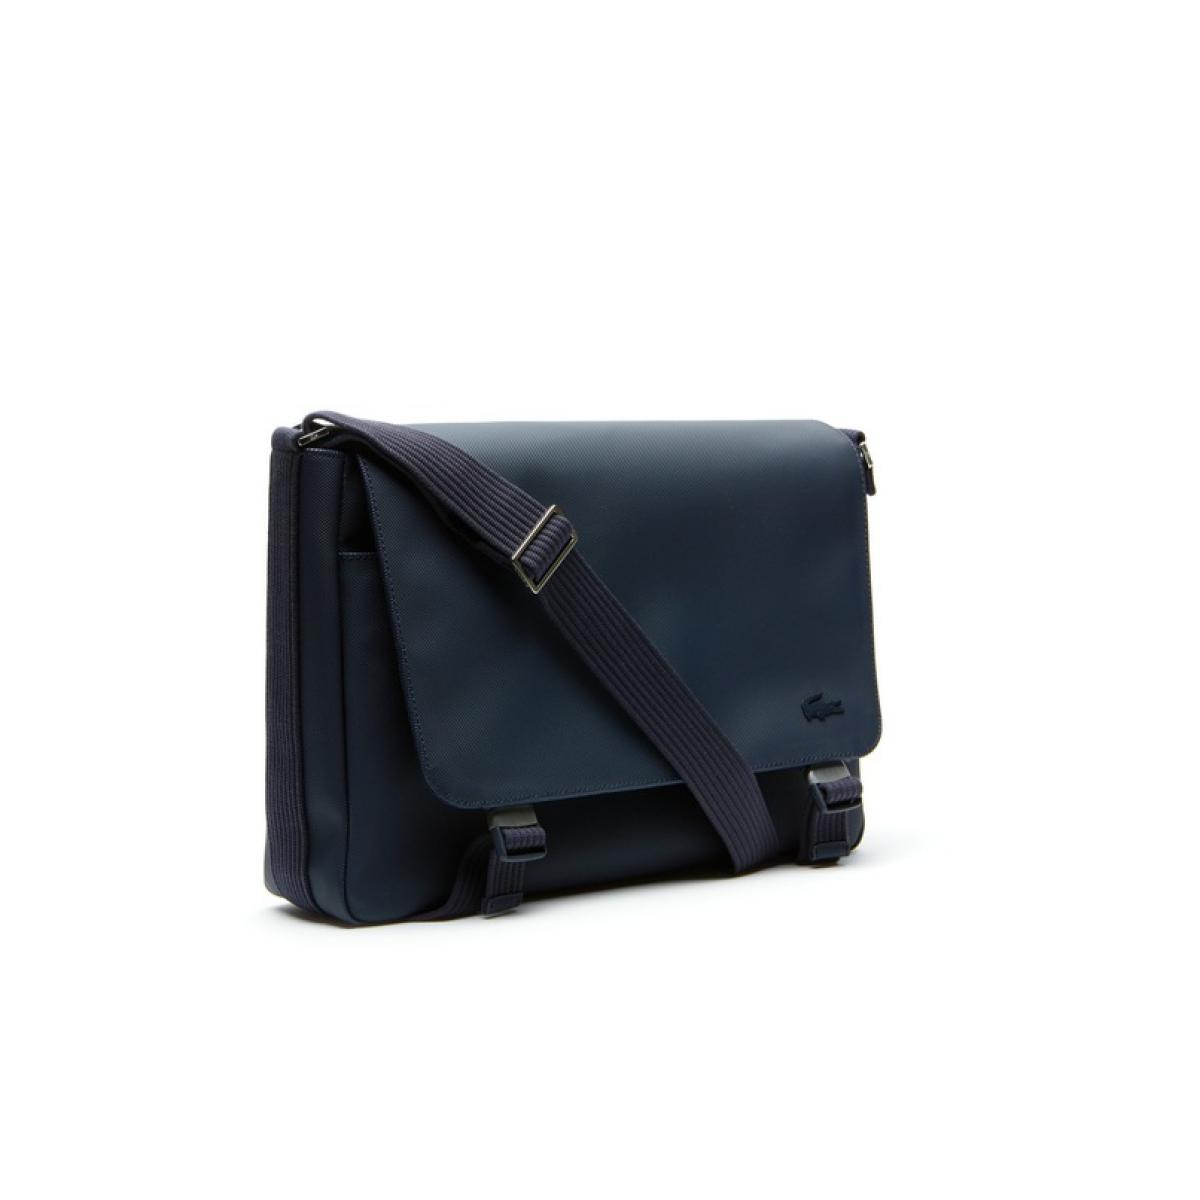 Sac Besace Messenger homme Lacoste